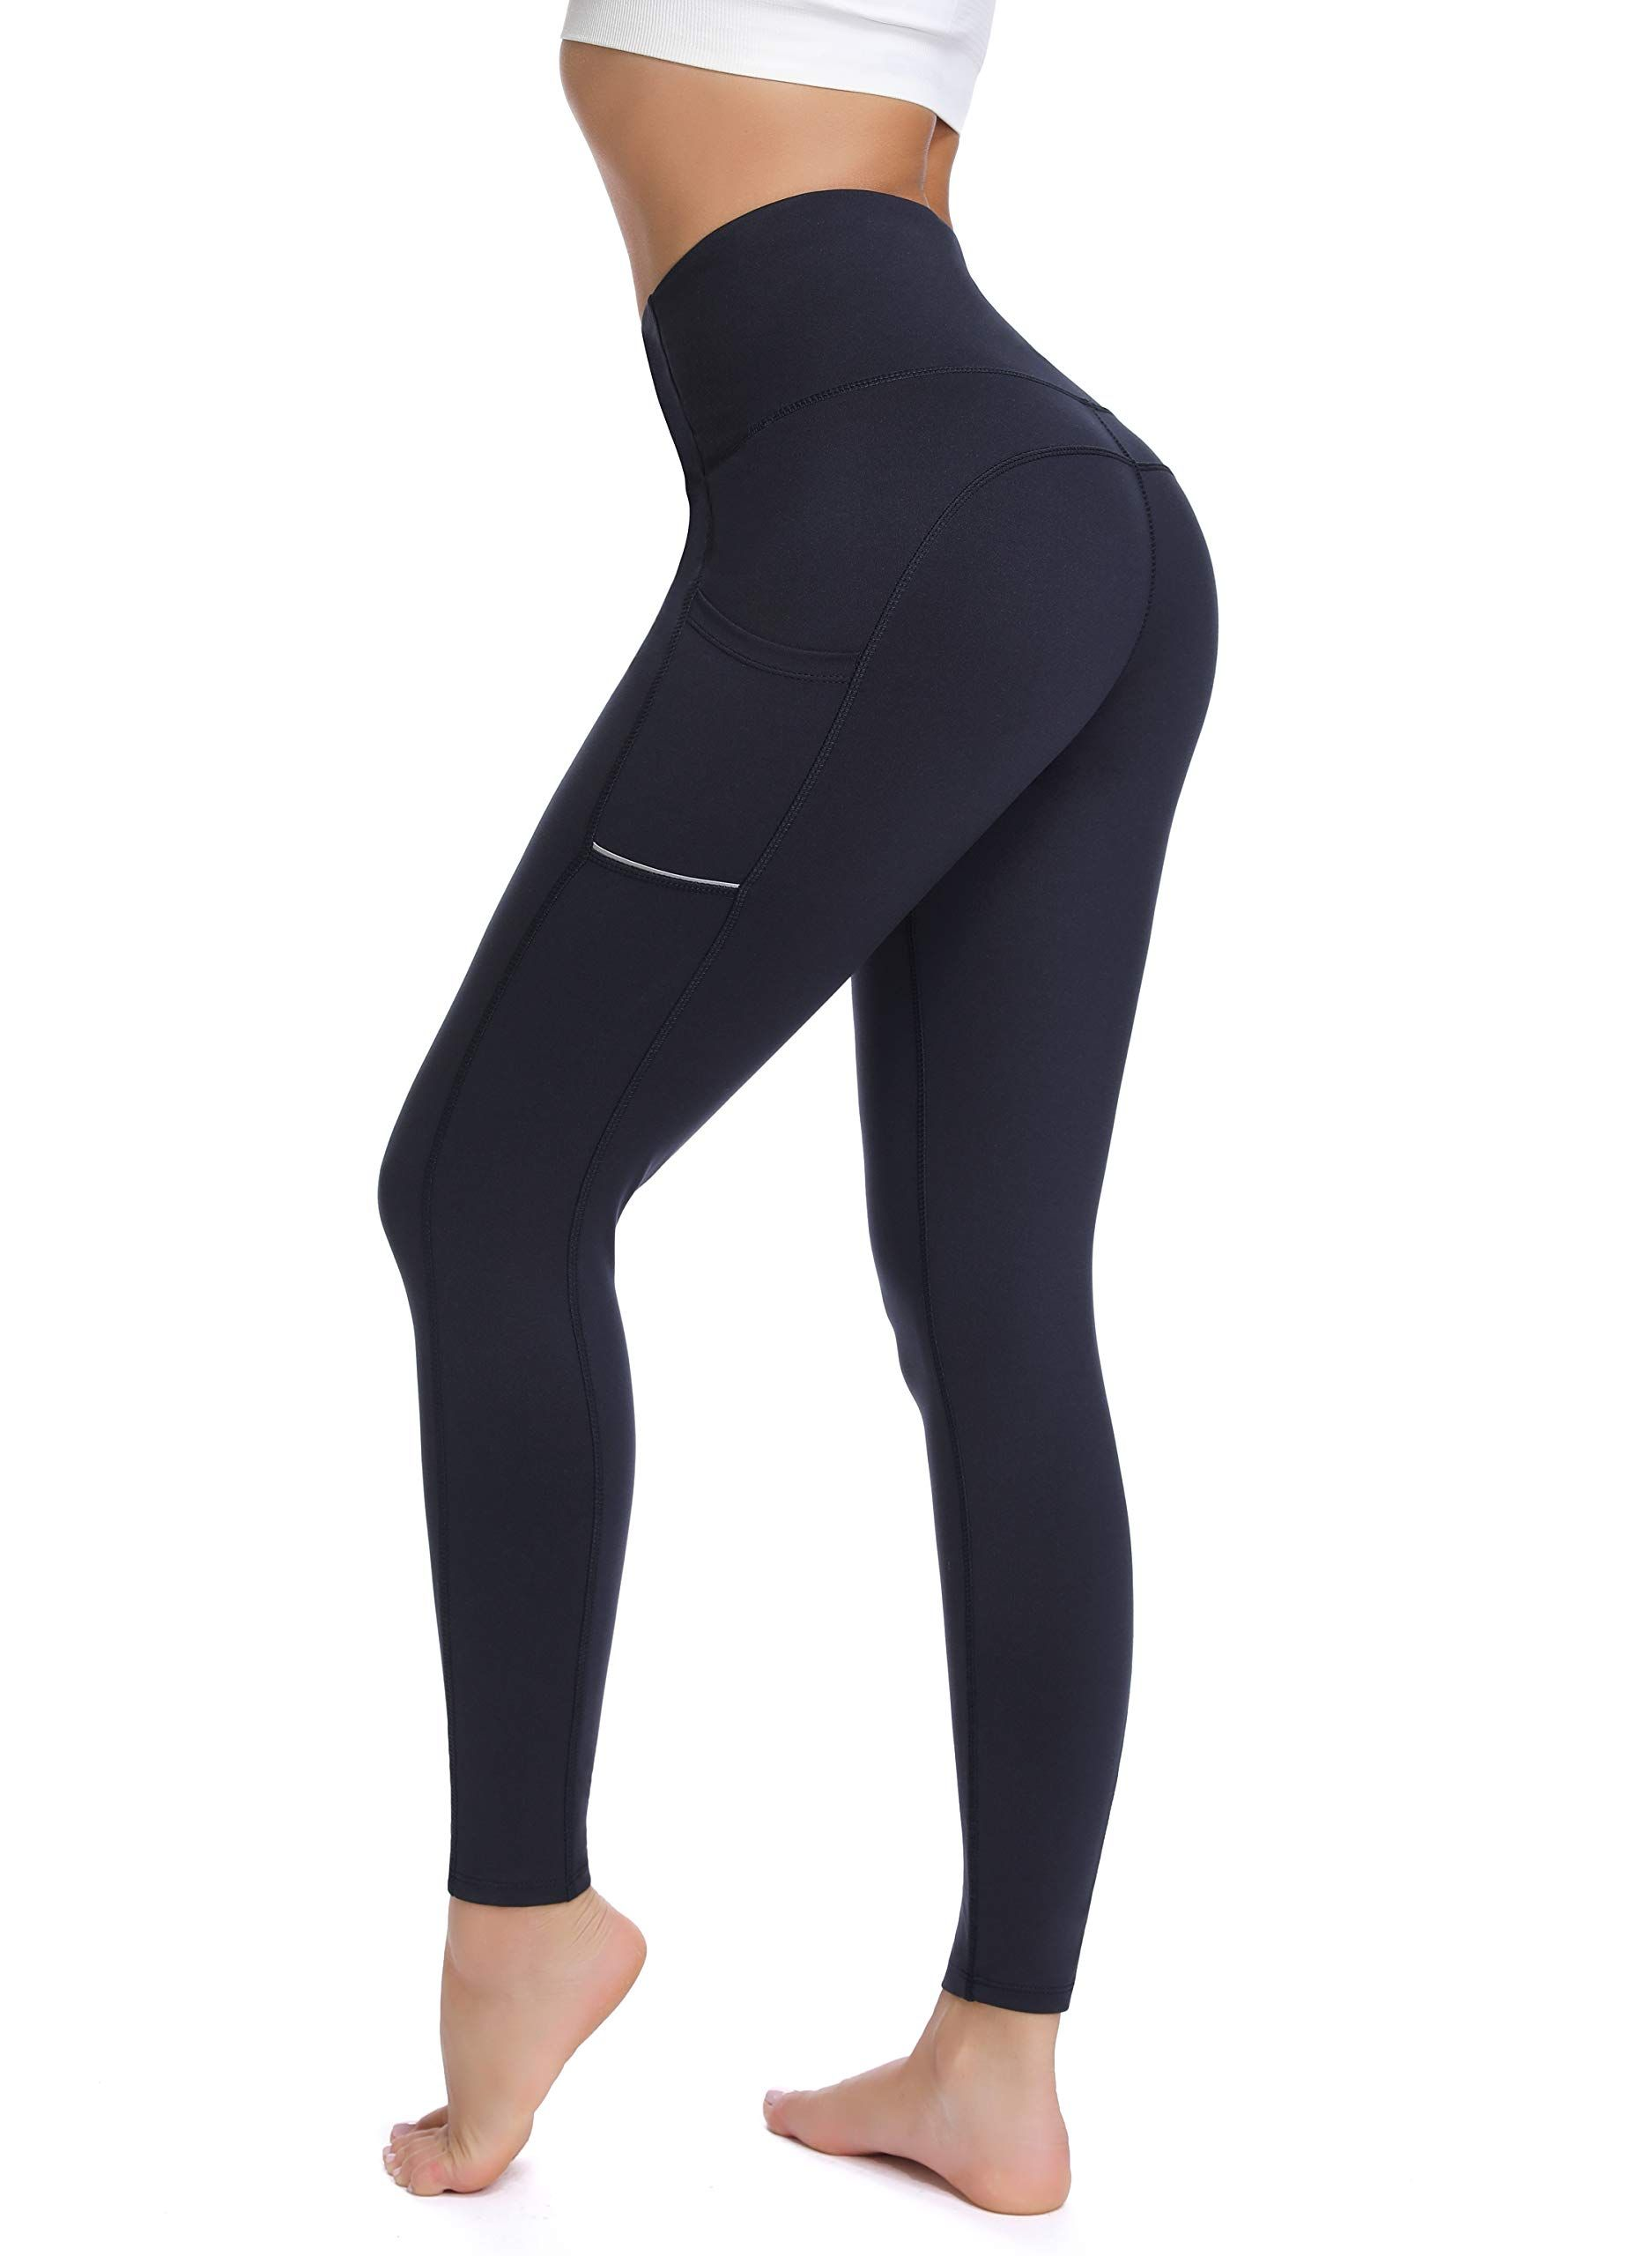 34++ Tummy control workout tops trends